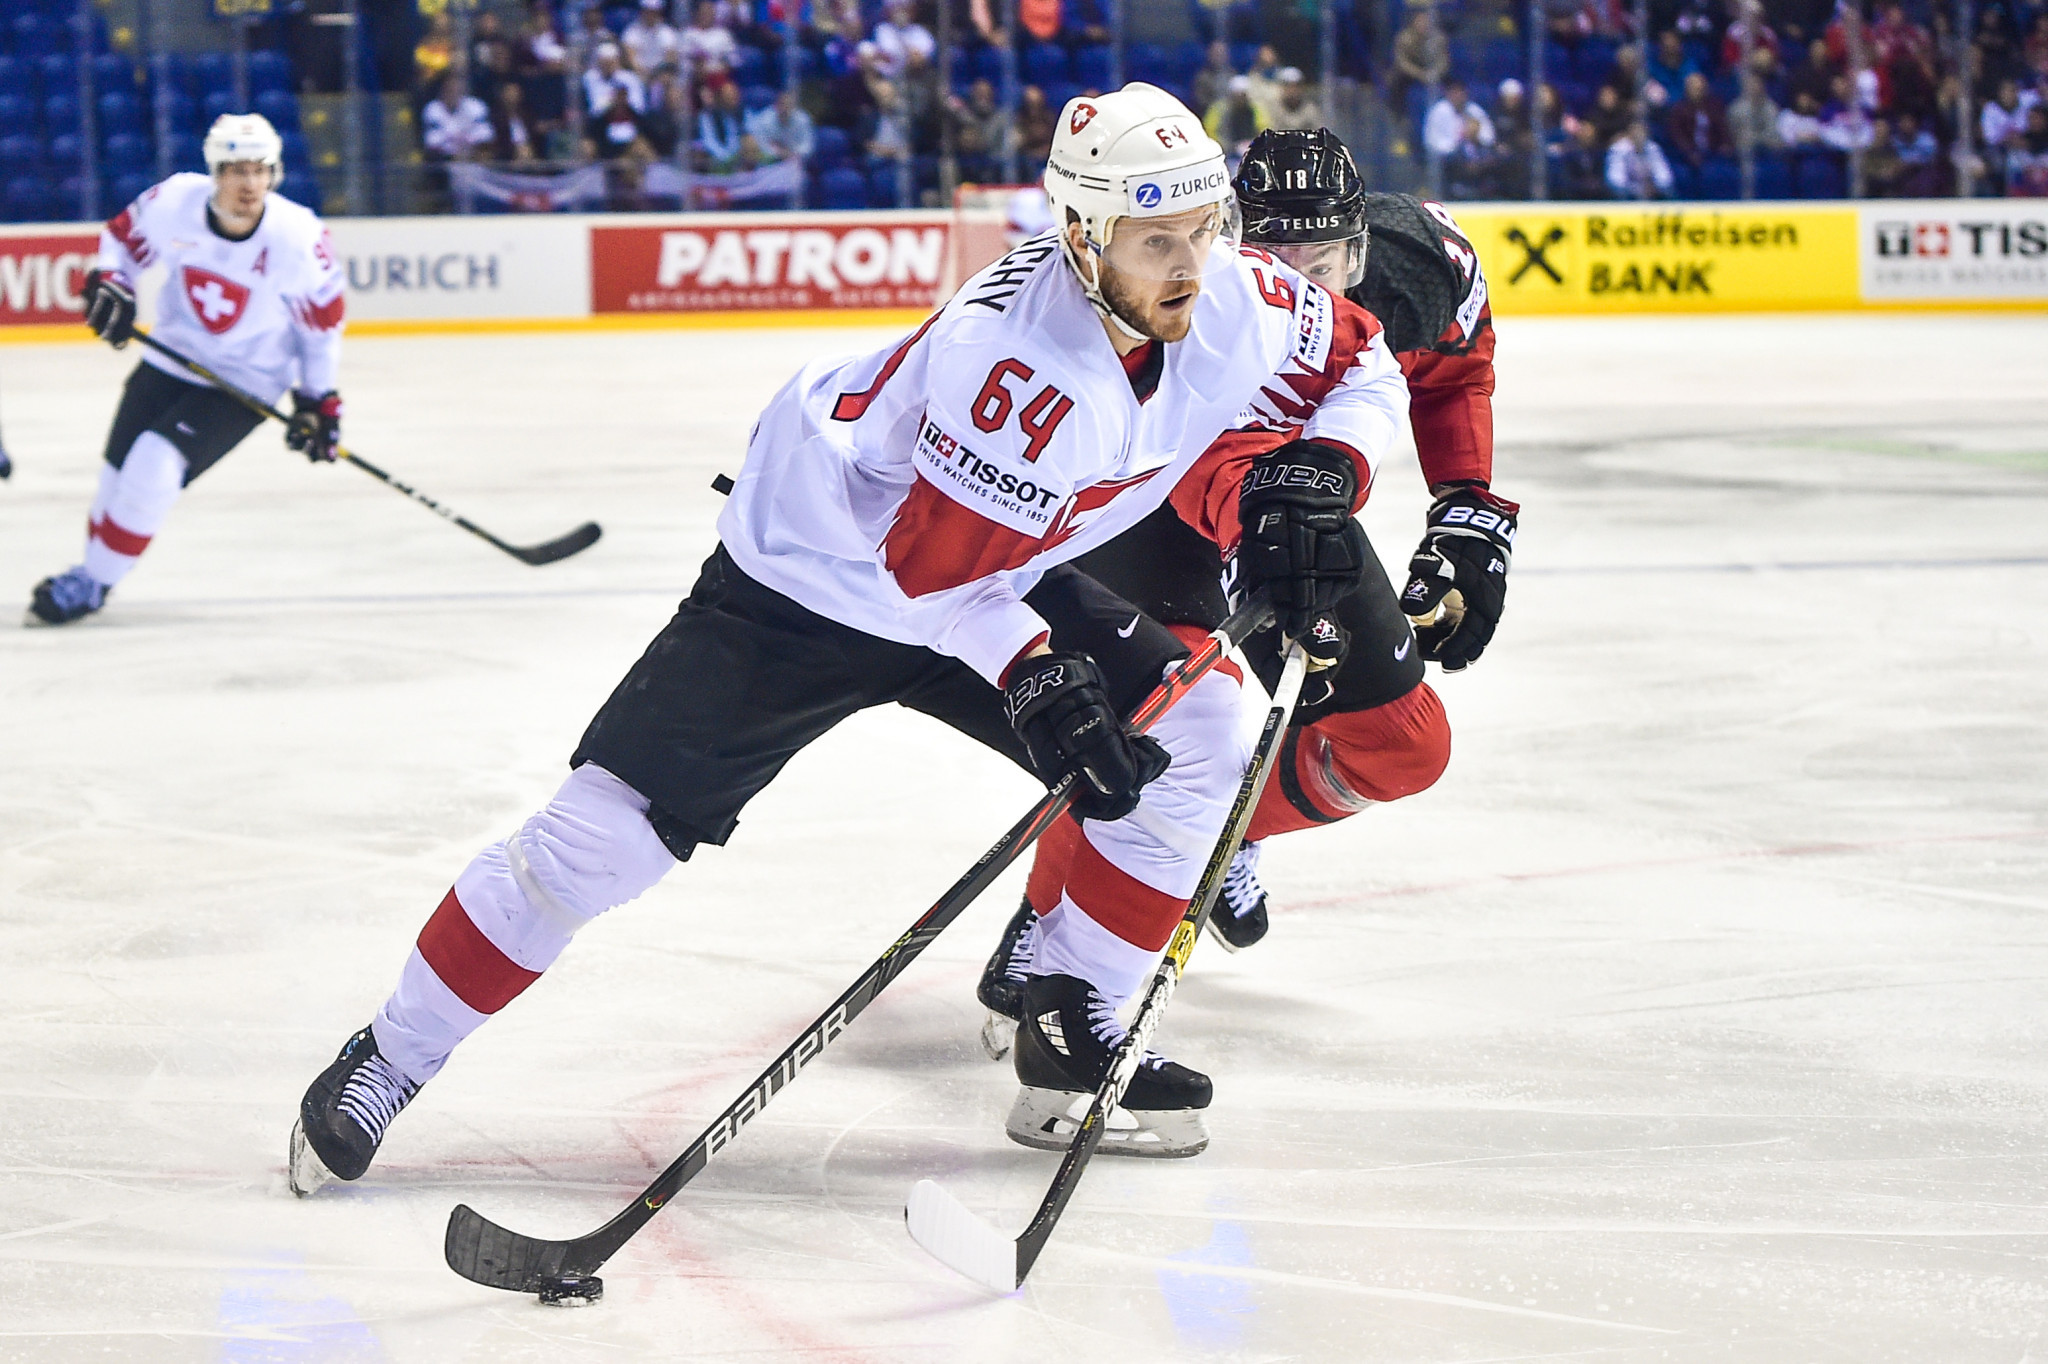 Switzerland reached the quarter-finals of this year's IIHF World Championship ©Getty Images